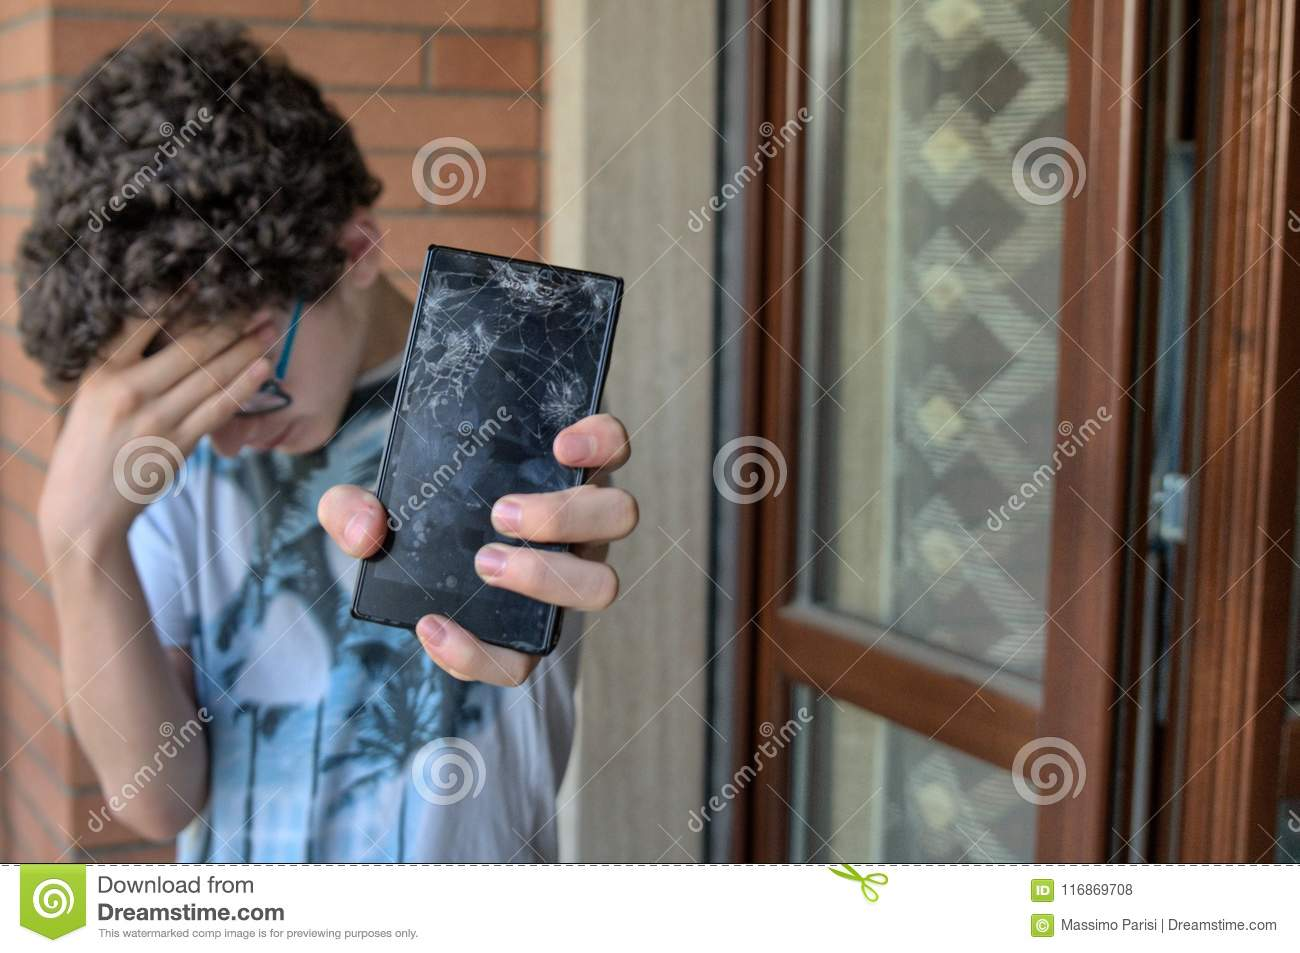 Young boy, sad and desperate for his smartphone